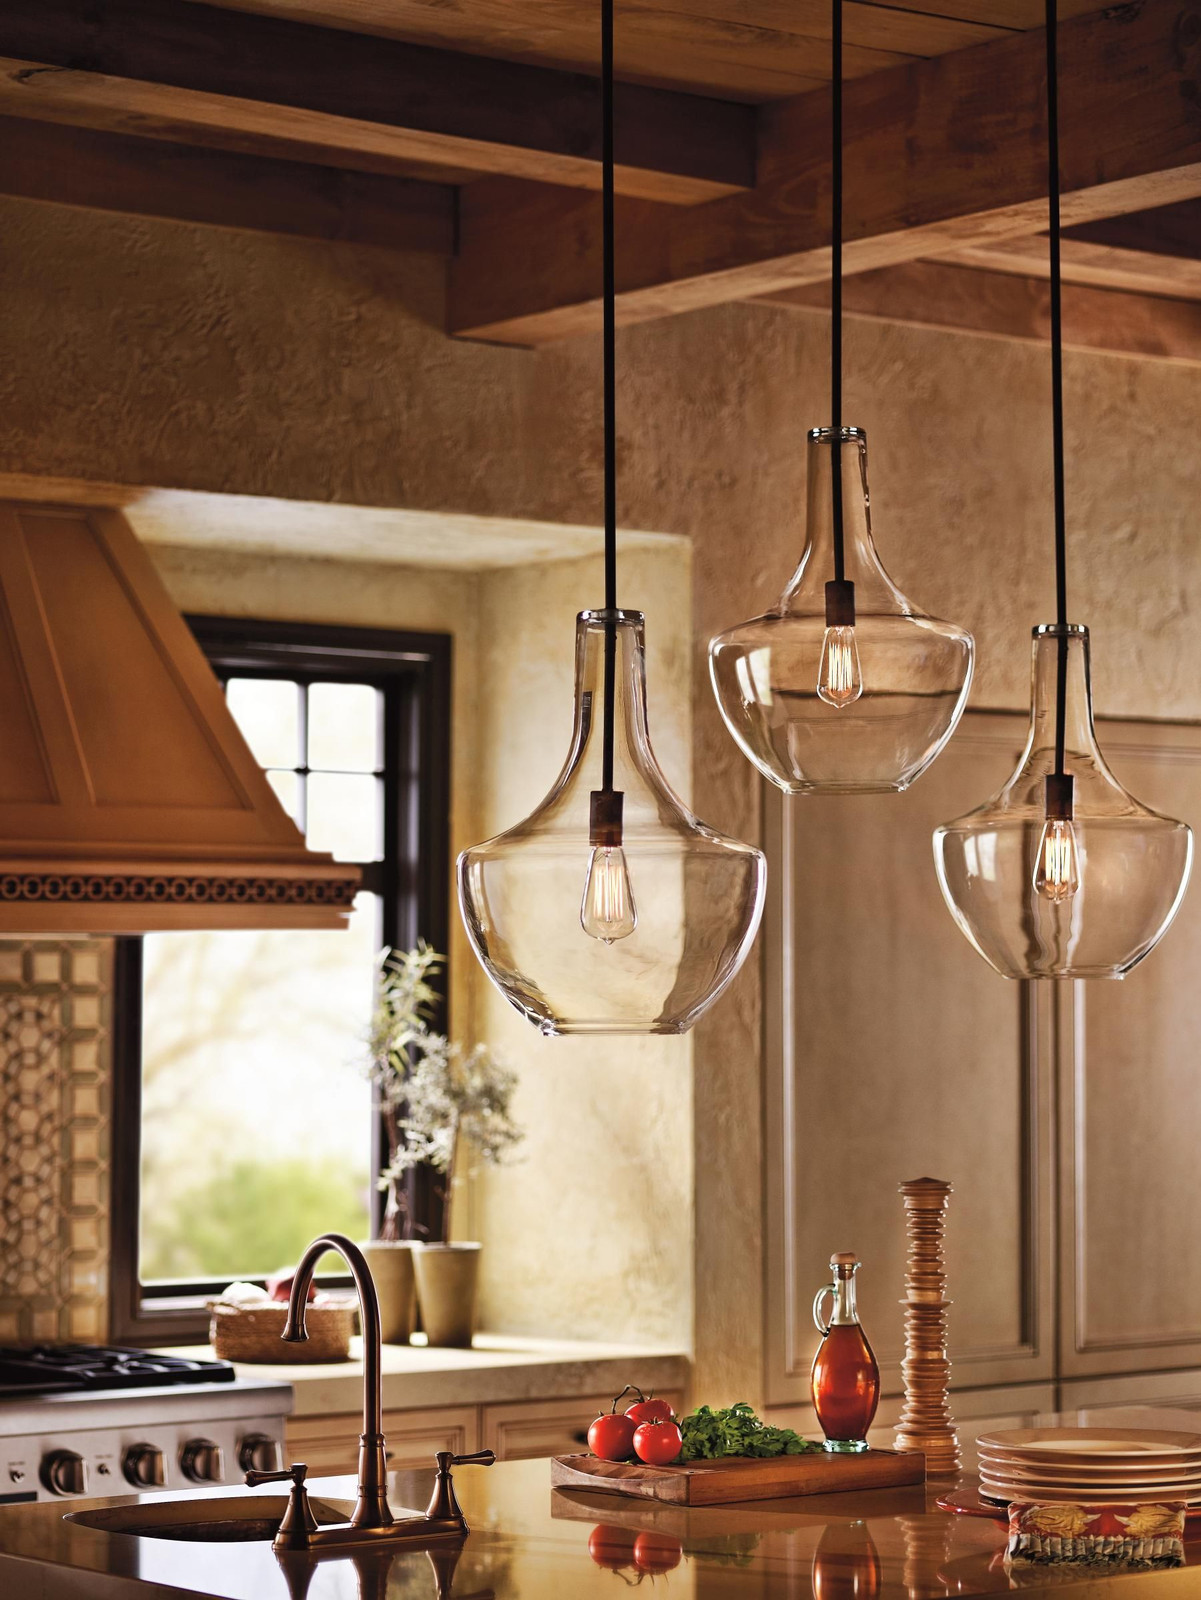 Affordable indoor and outdoor lighting solutions for your home or business